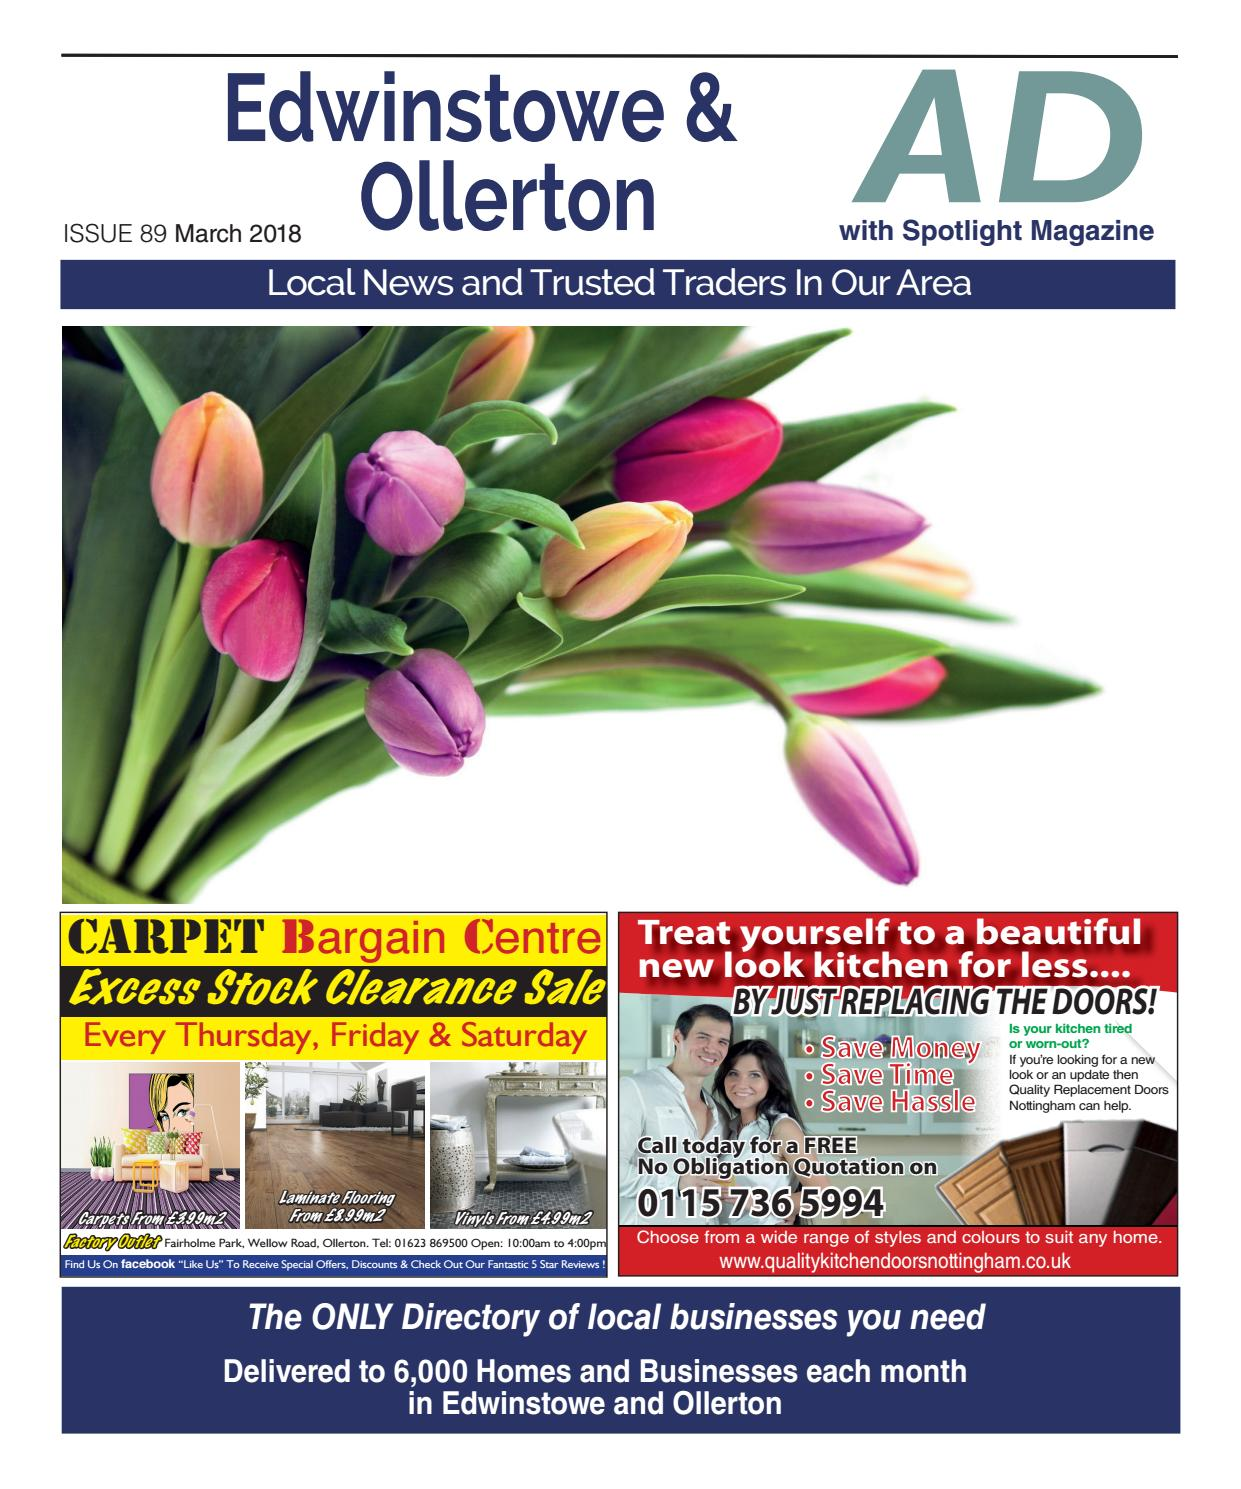 Ad Newspaper for Edwinstowe & Ollerton in Mansfield Nottingham March